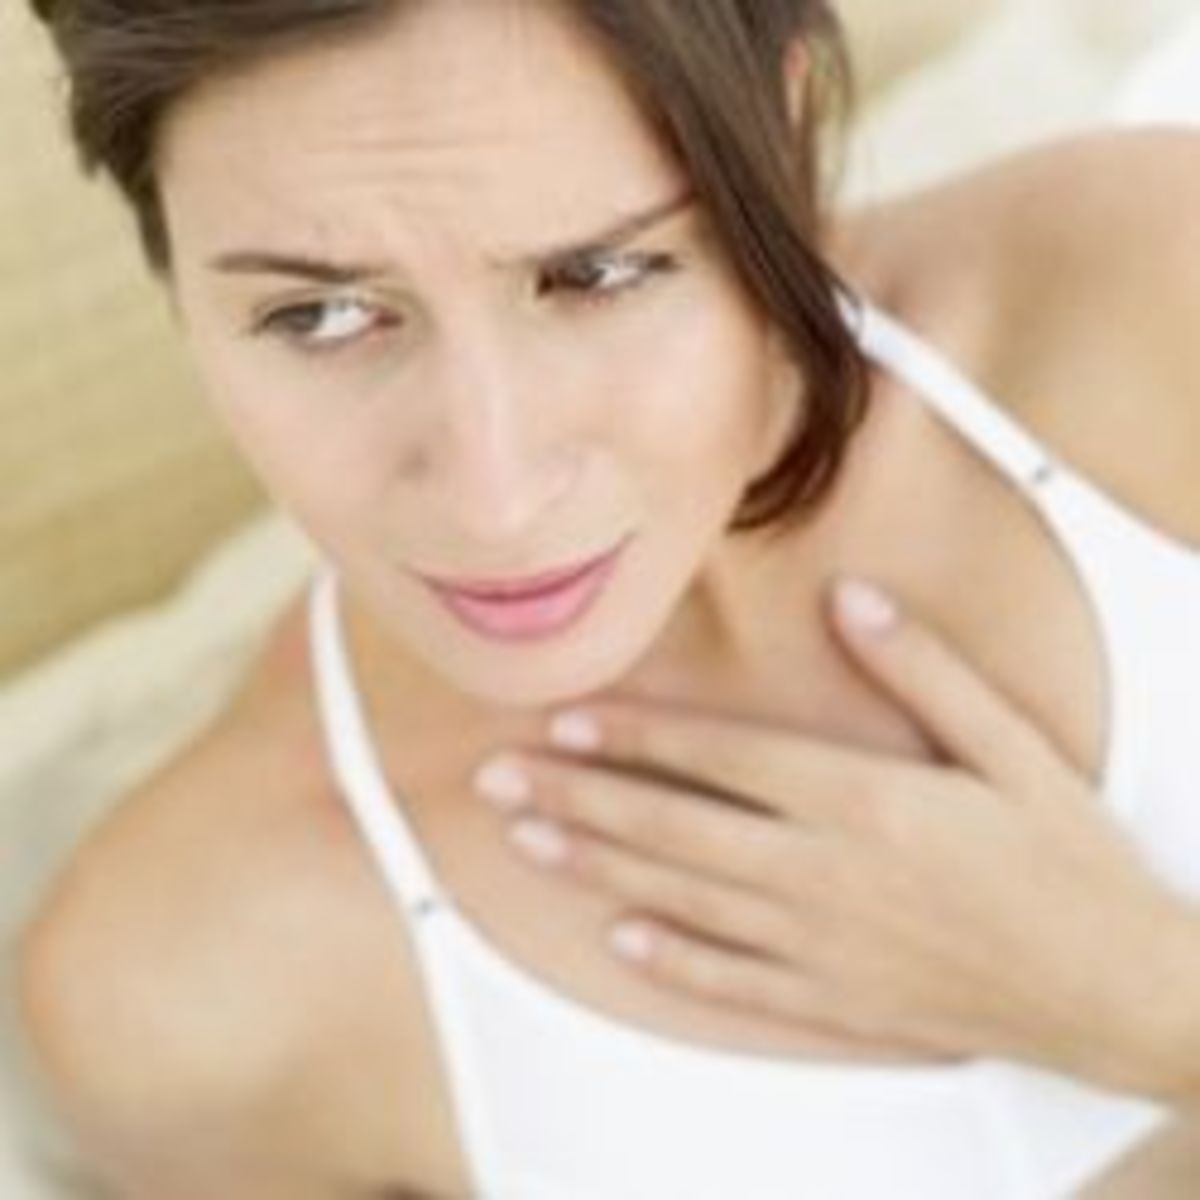 What Foods to Avoid that Causes Acid Reflux?